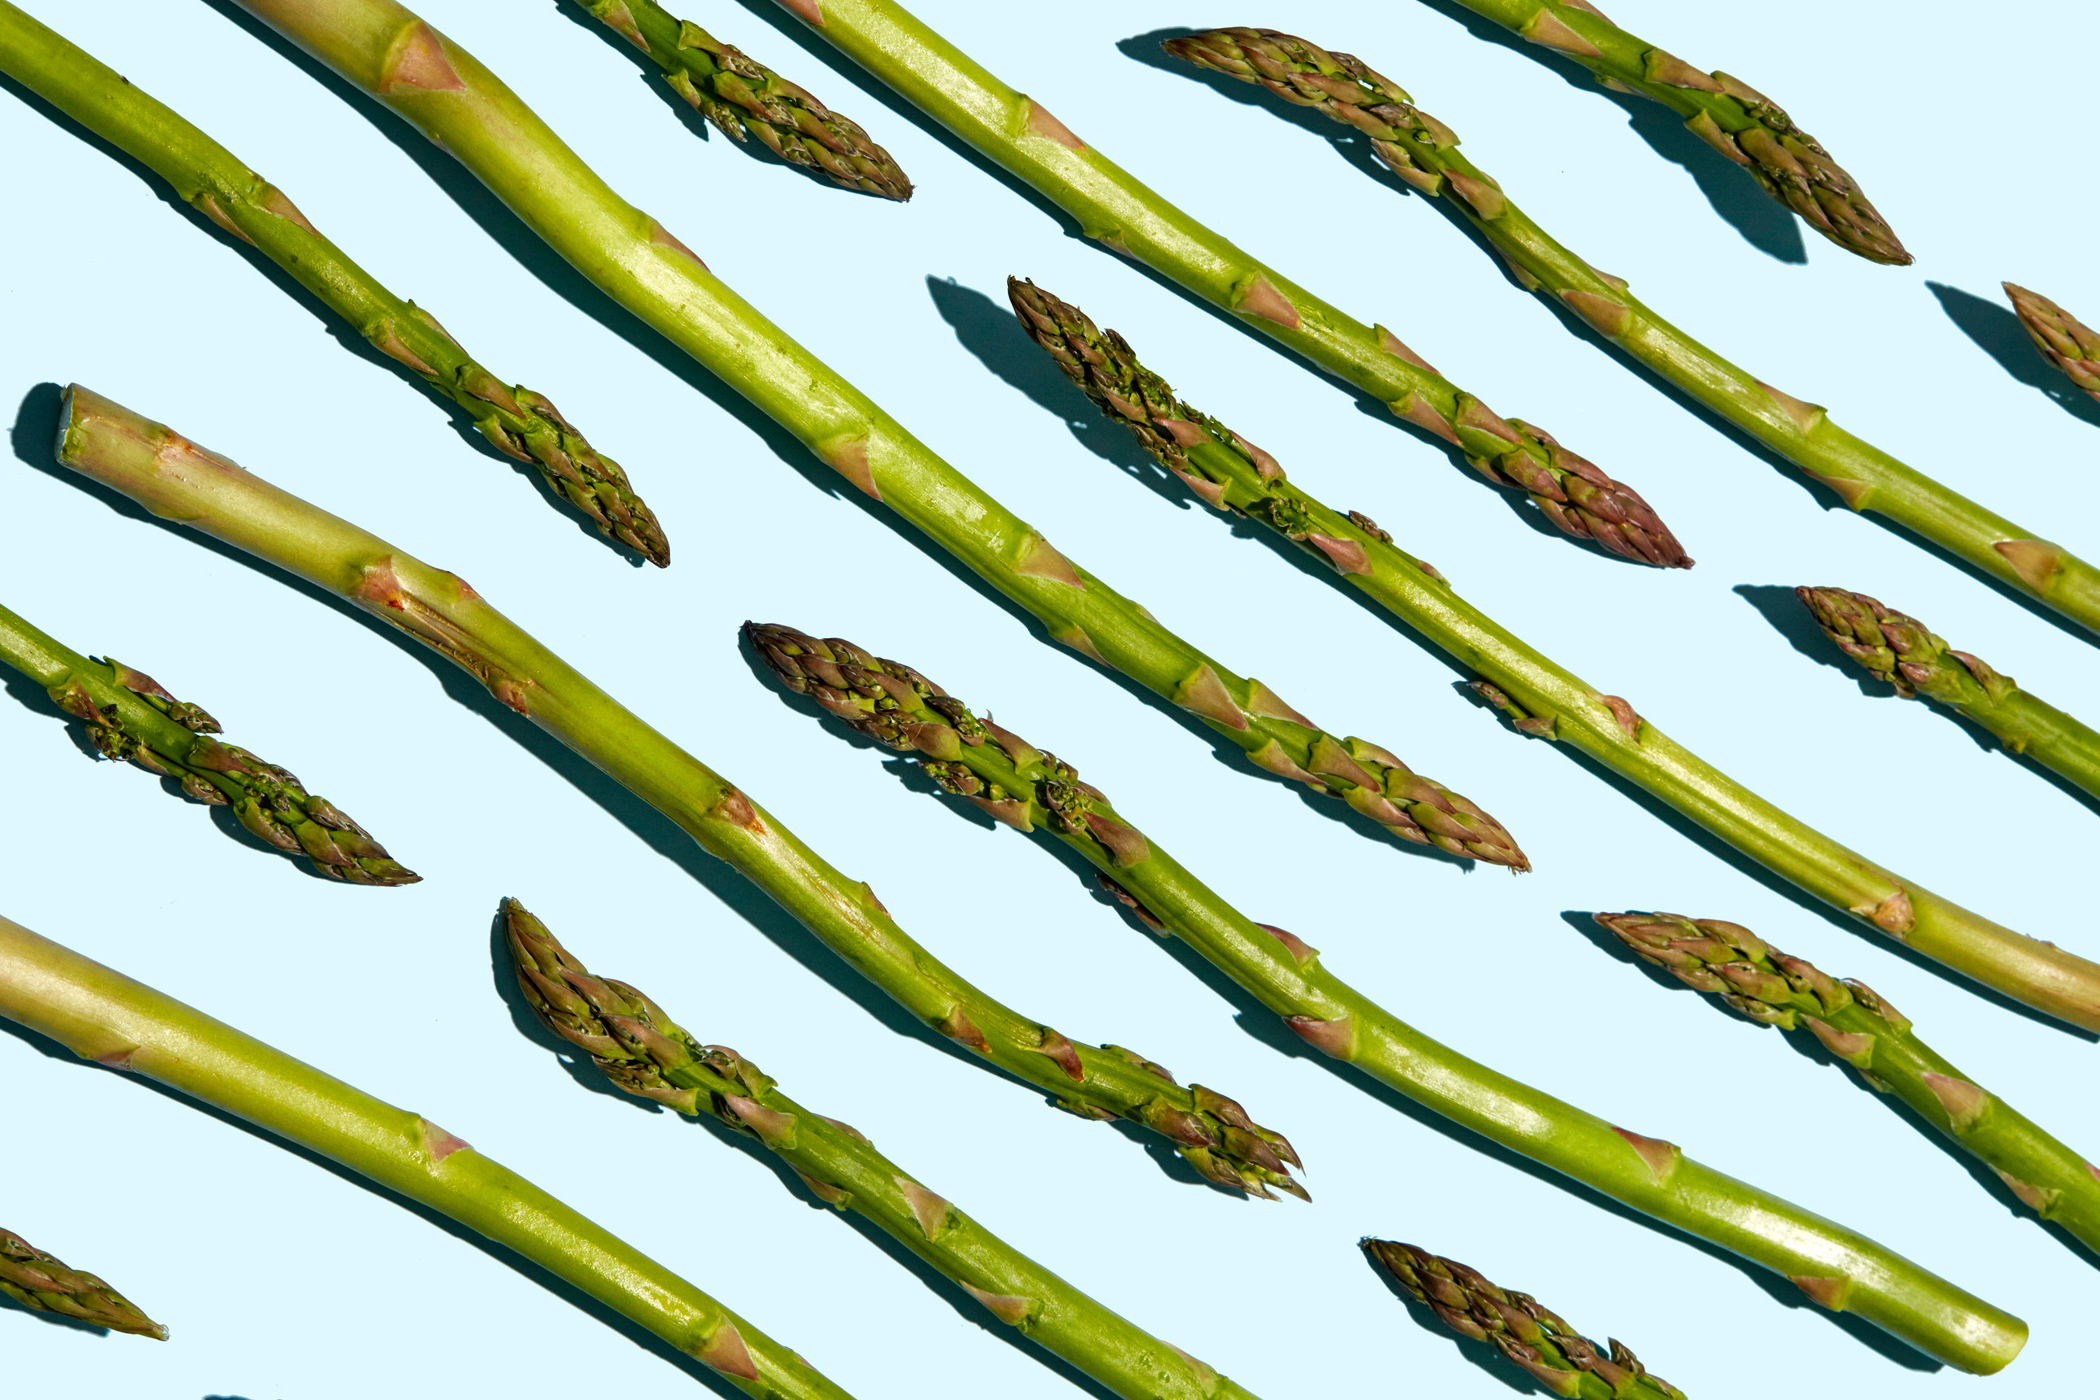 healthiest foods, health food, diet, nutrition, time.com stock, asparagus